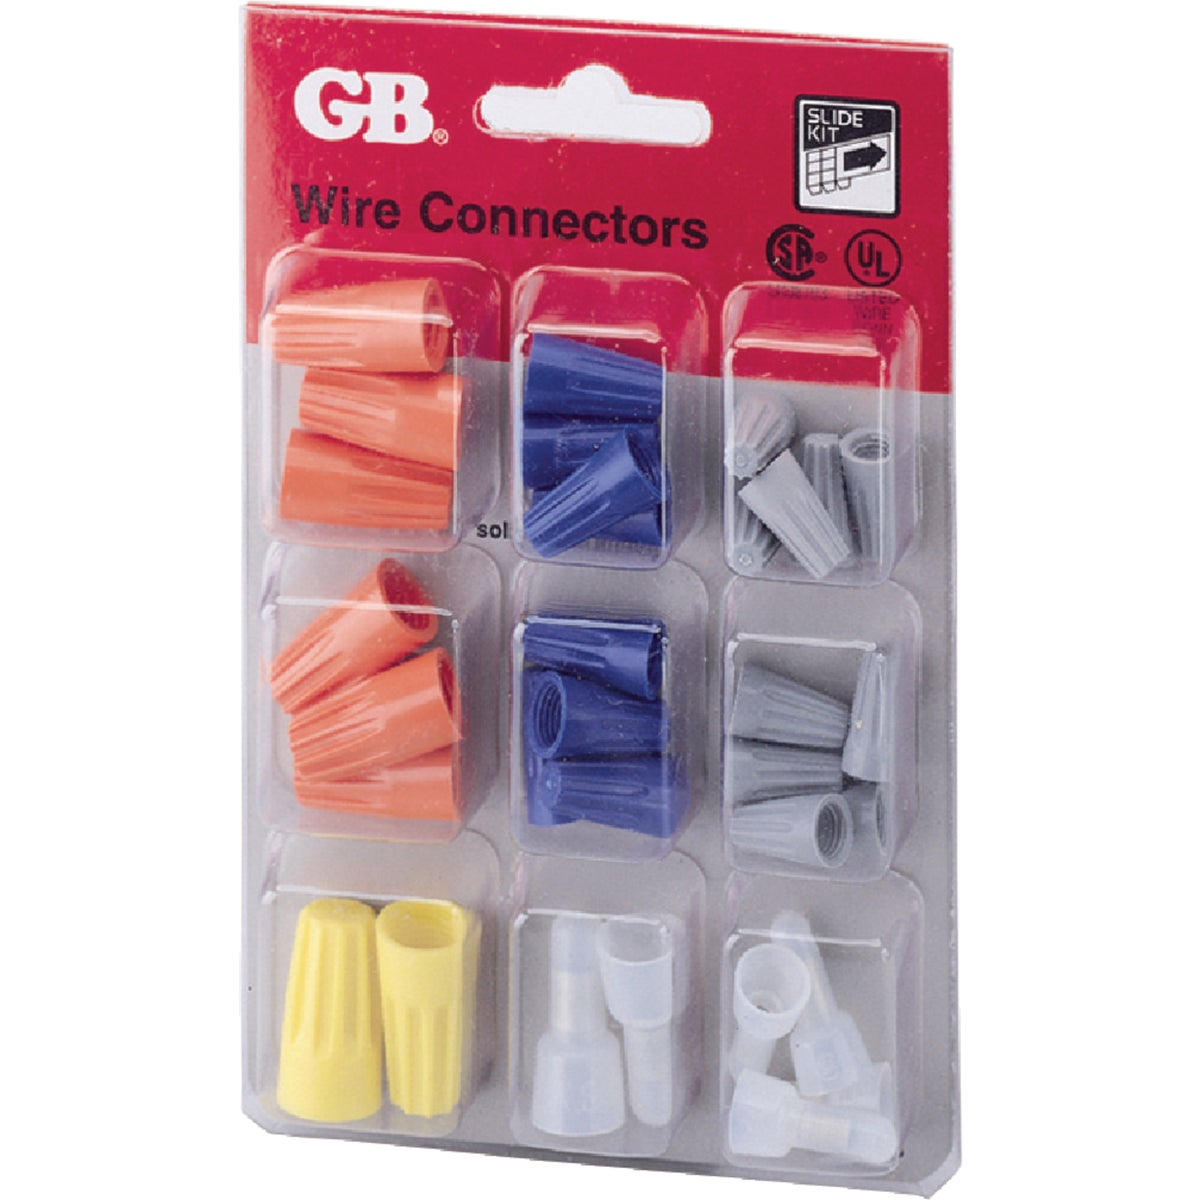 22-10 KIT CONNECTOR - TK-32 by G B Electrical Inc